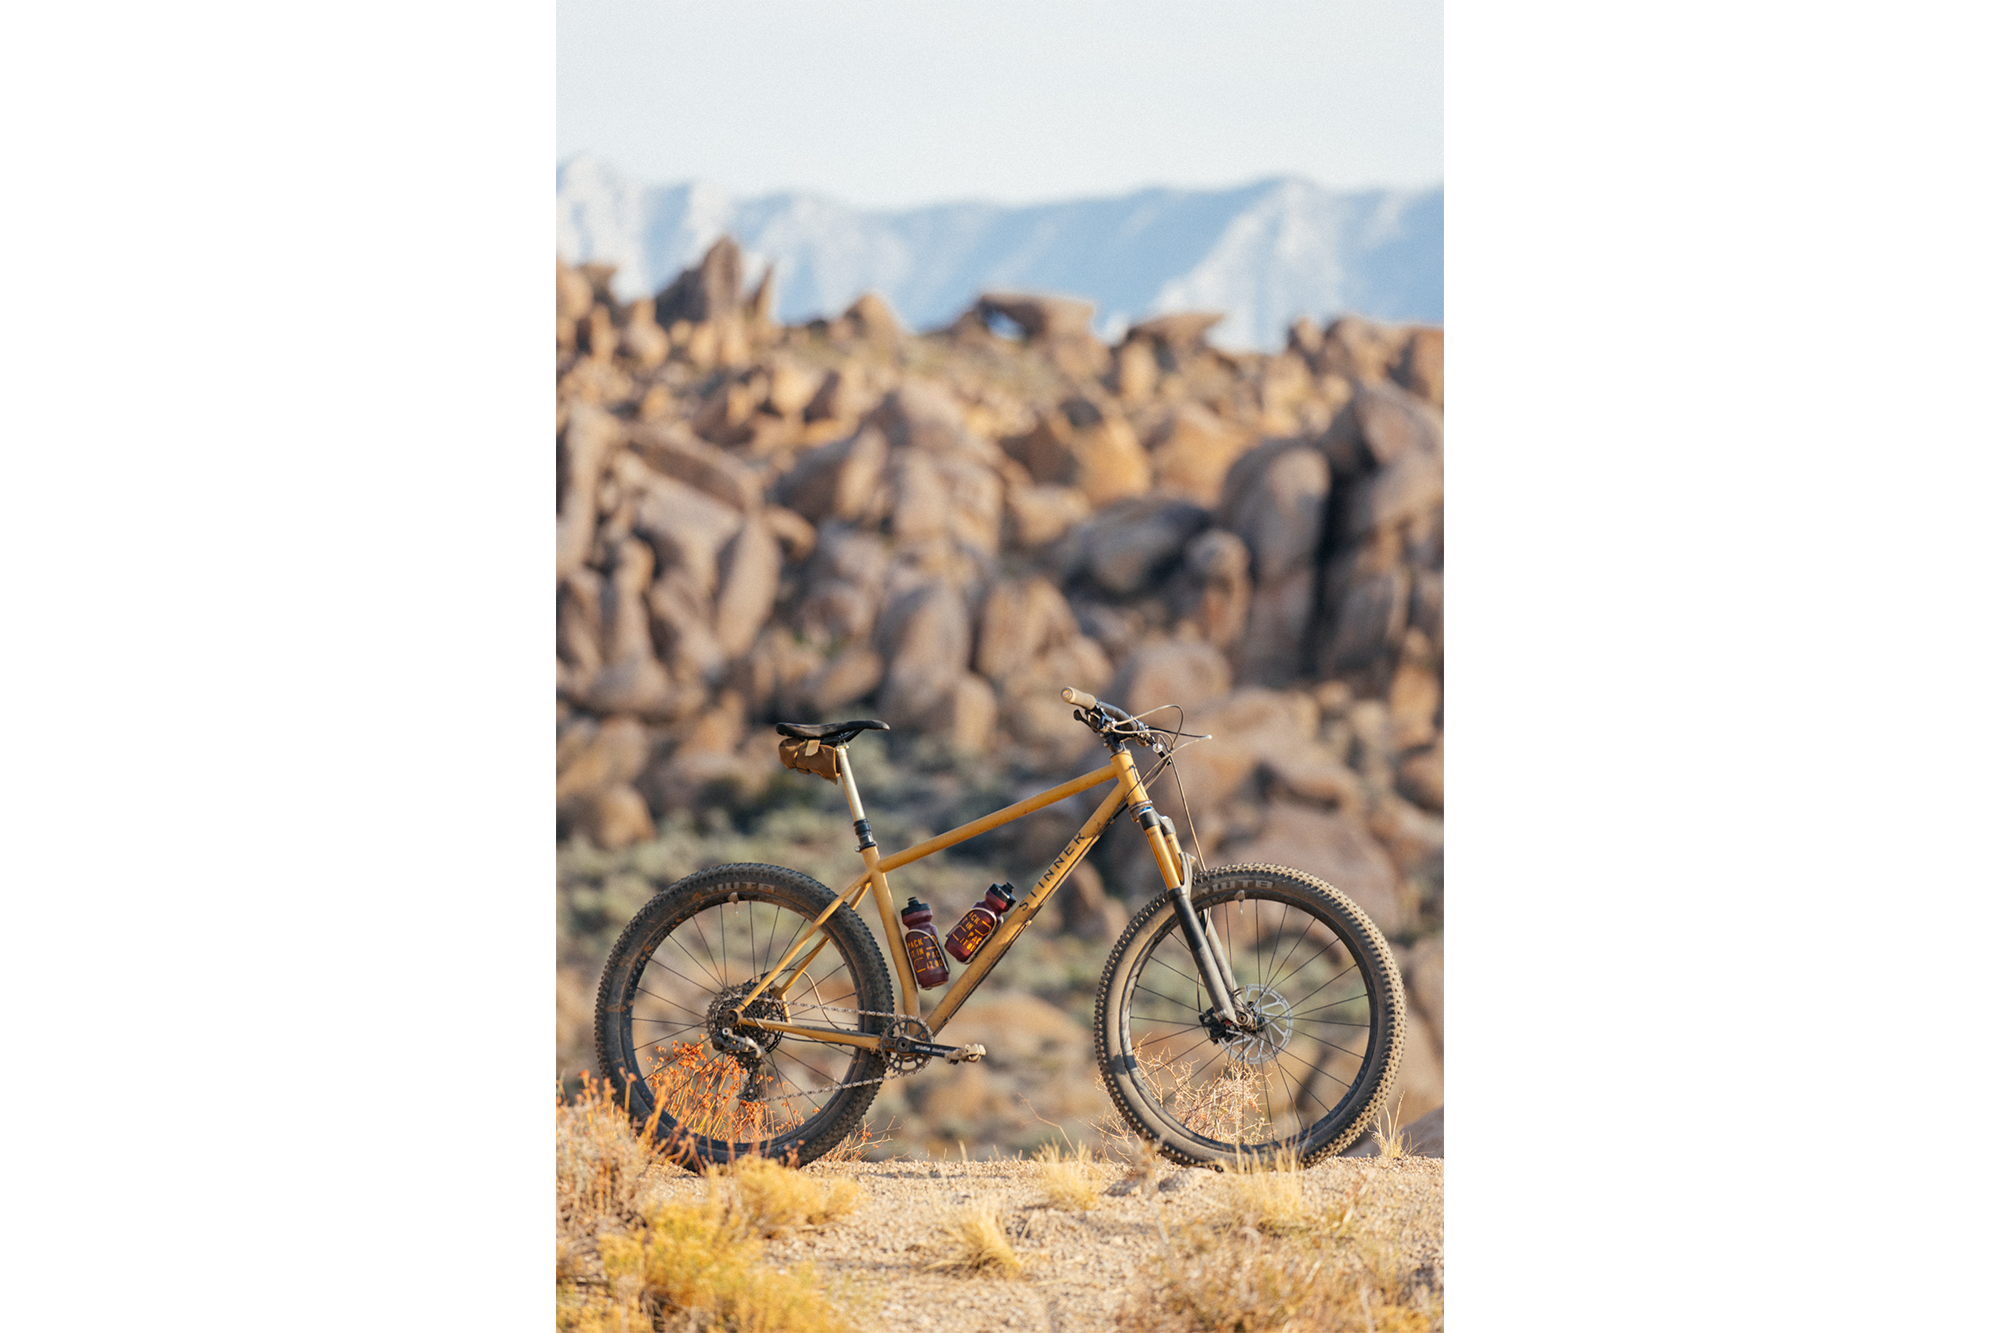 My Twilight Yellow Stinner Hardtail